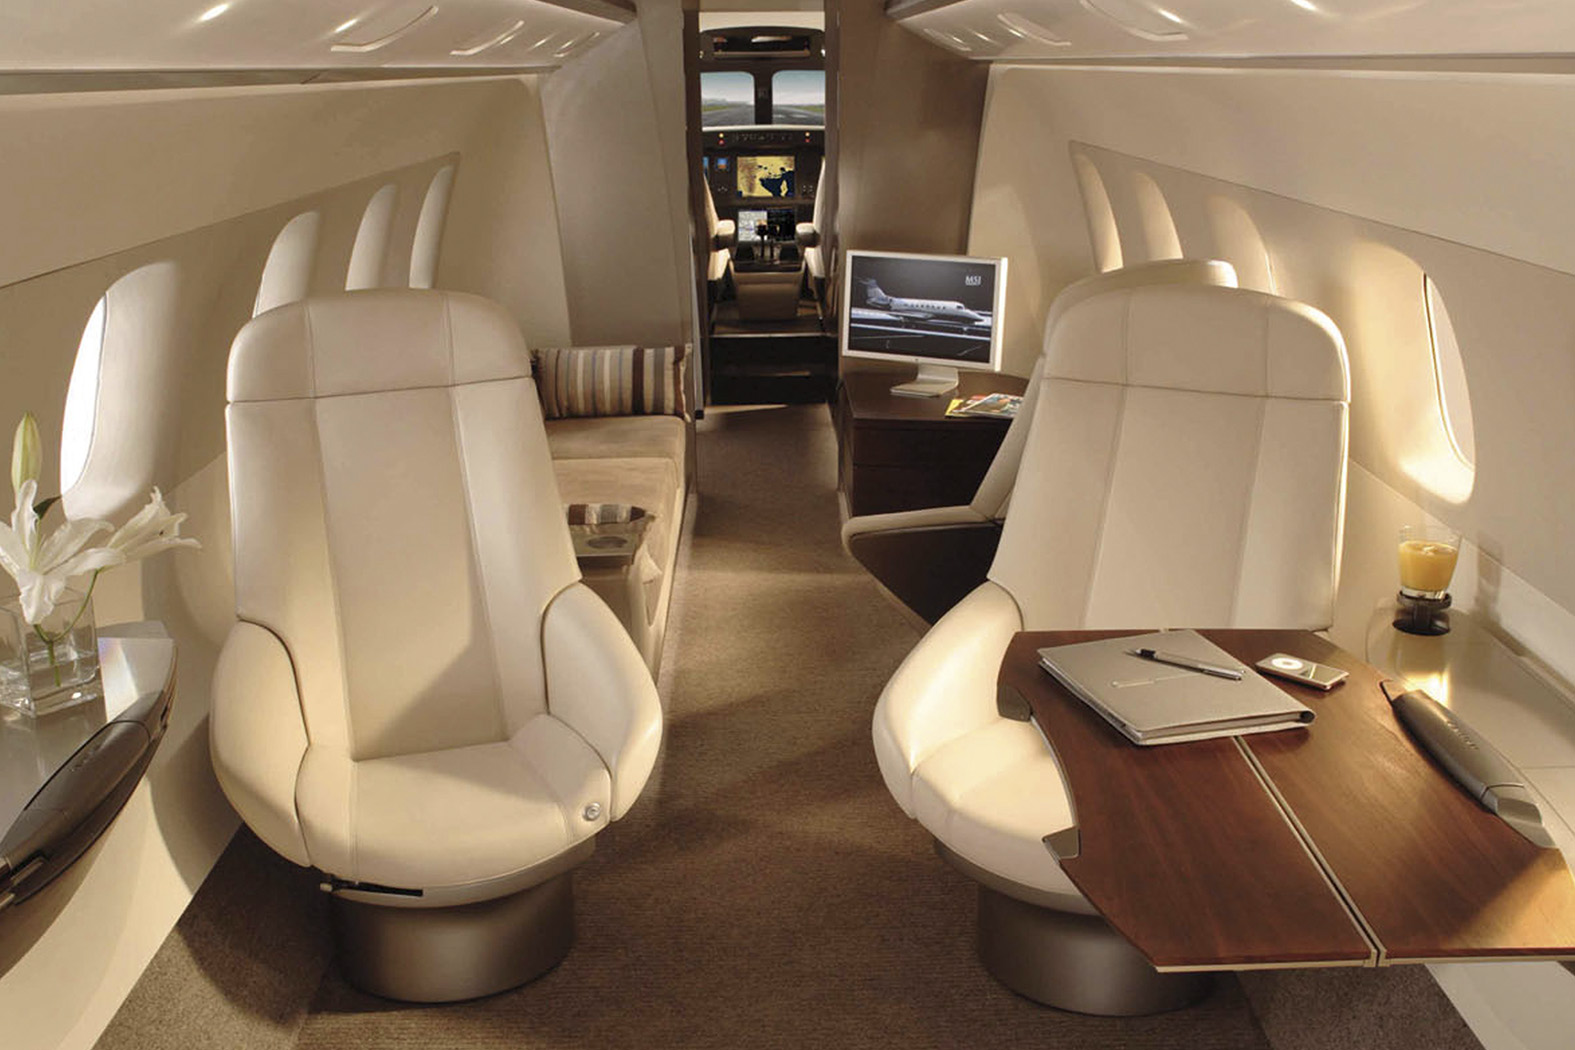 Interior of EMBRAER LEGACY 500